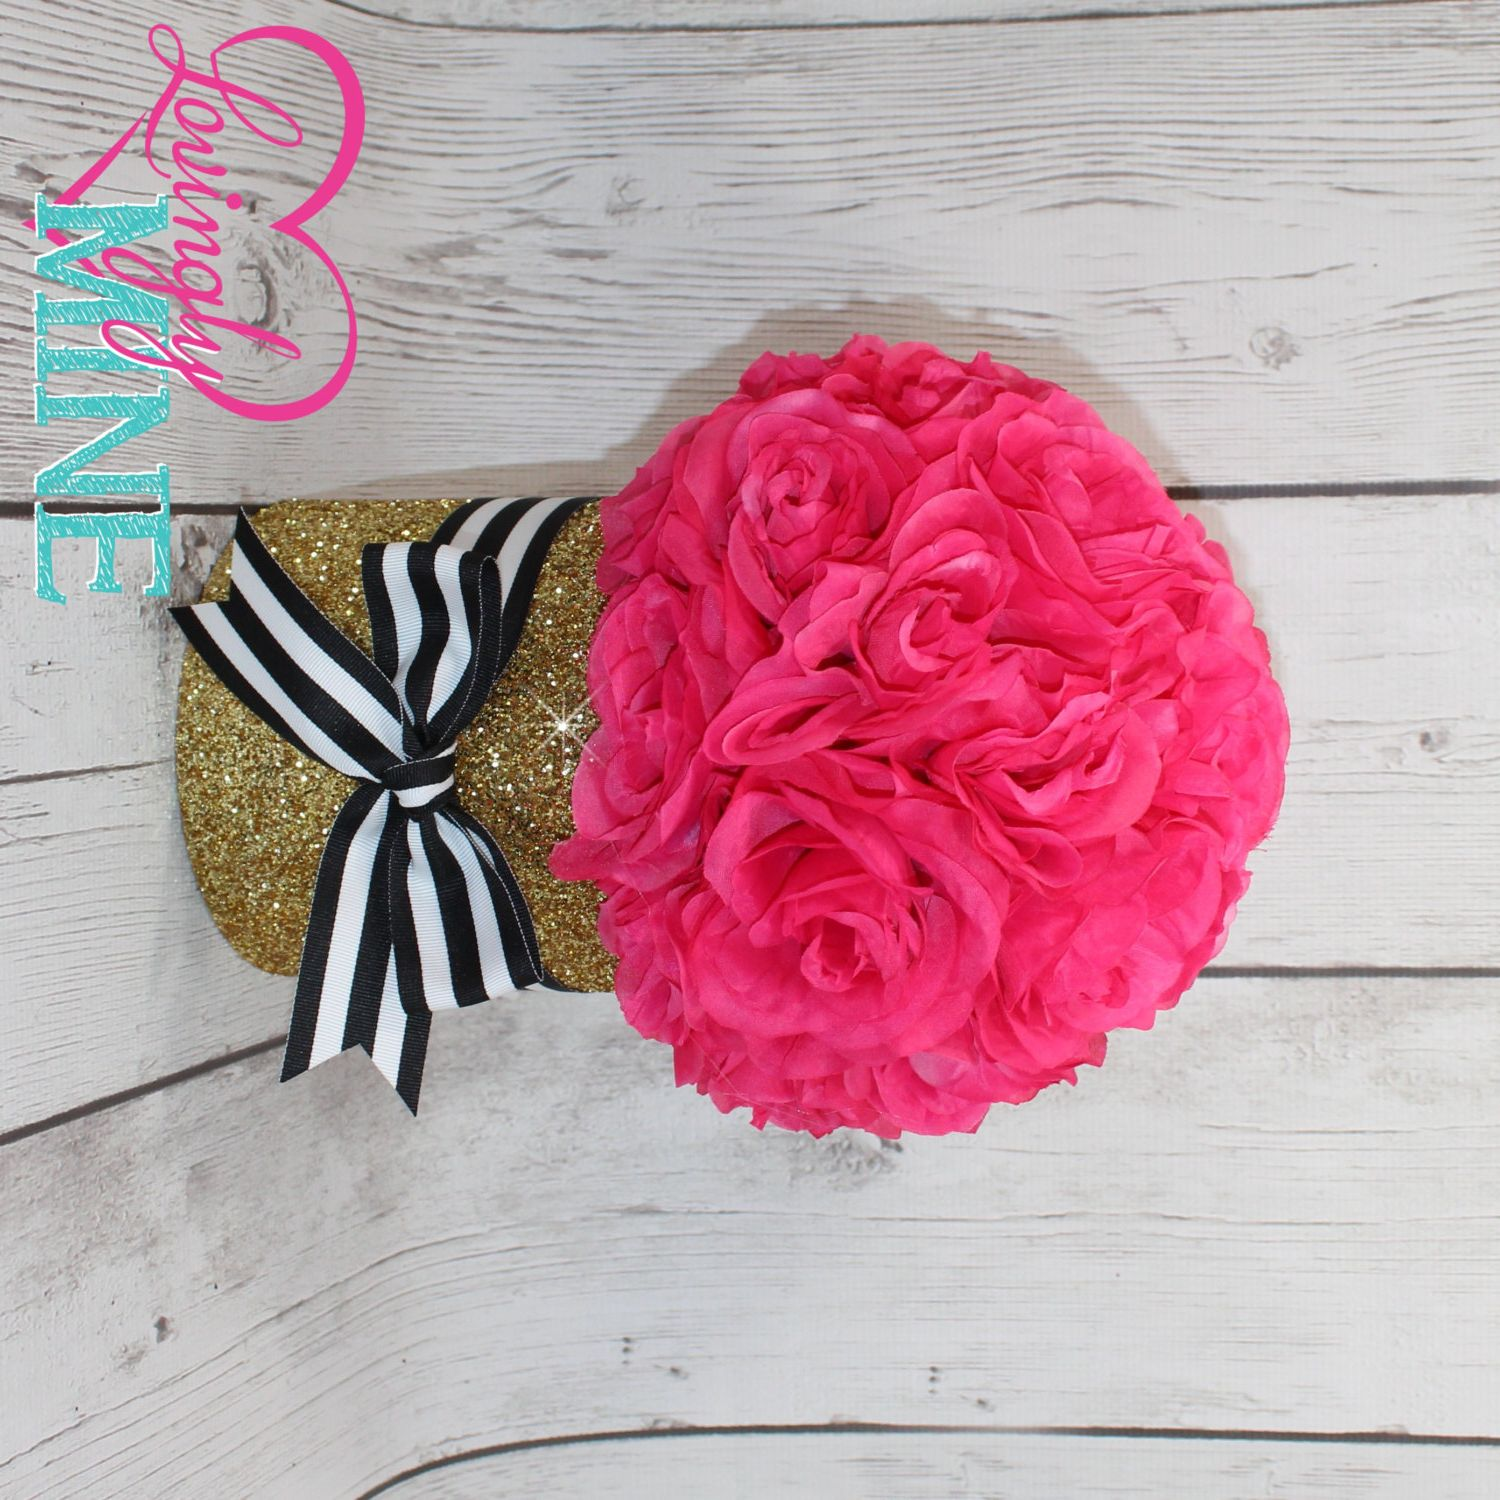 Hot Pink And Black Bedroom Punk Girly: Hot Pink, Black & White Stripes And Glitter Gold